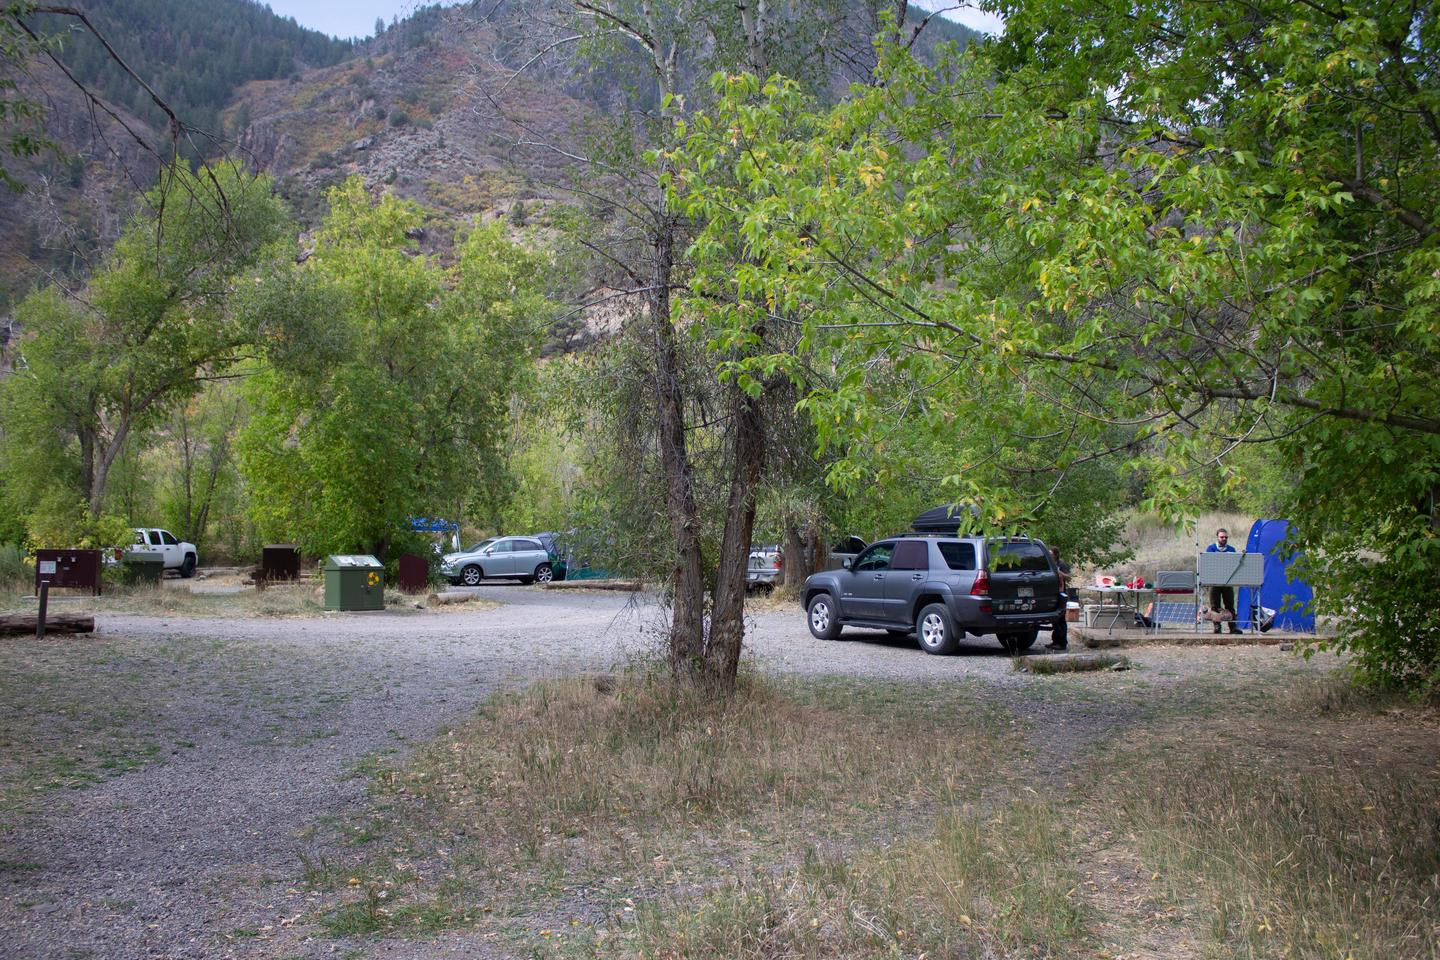 East Portal Campground  - Sites with vehicle accessFive out of the fifteen sites have vehicle access.